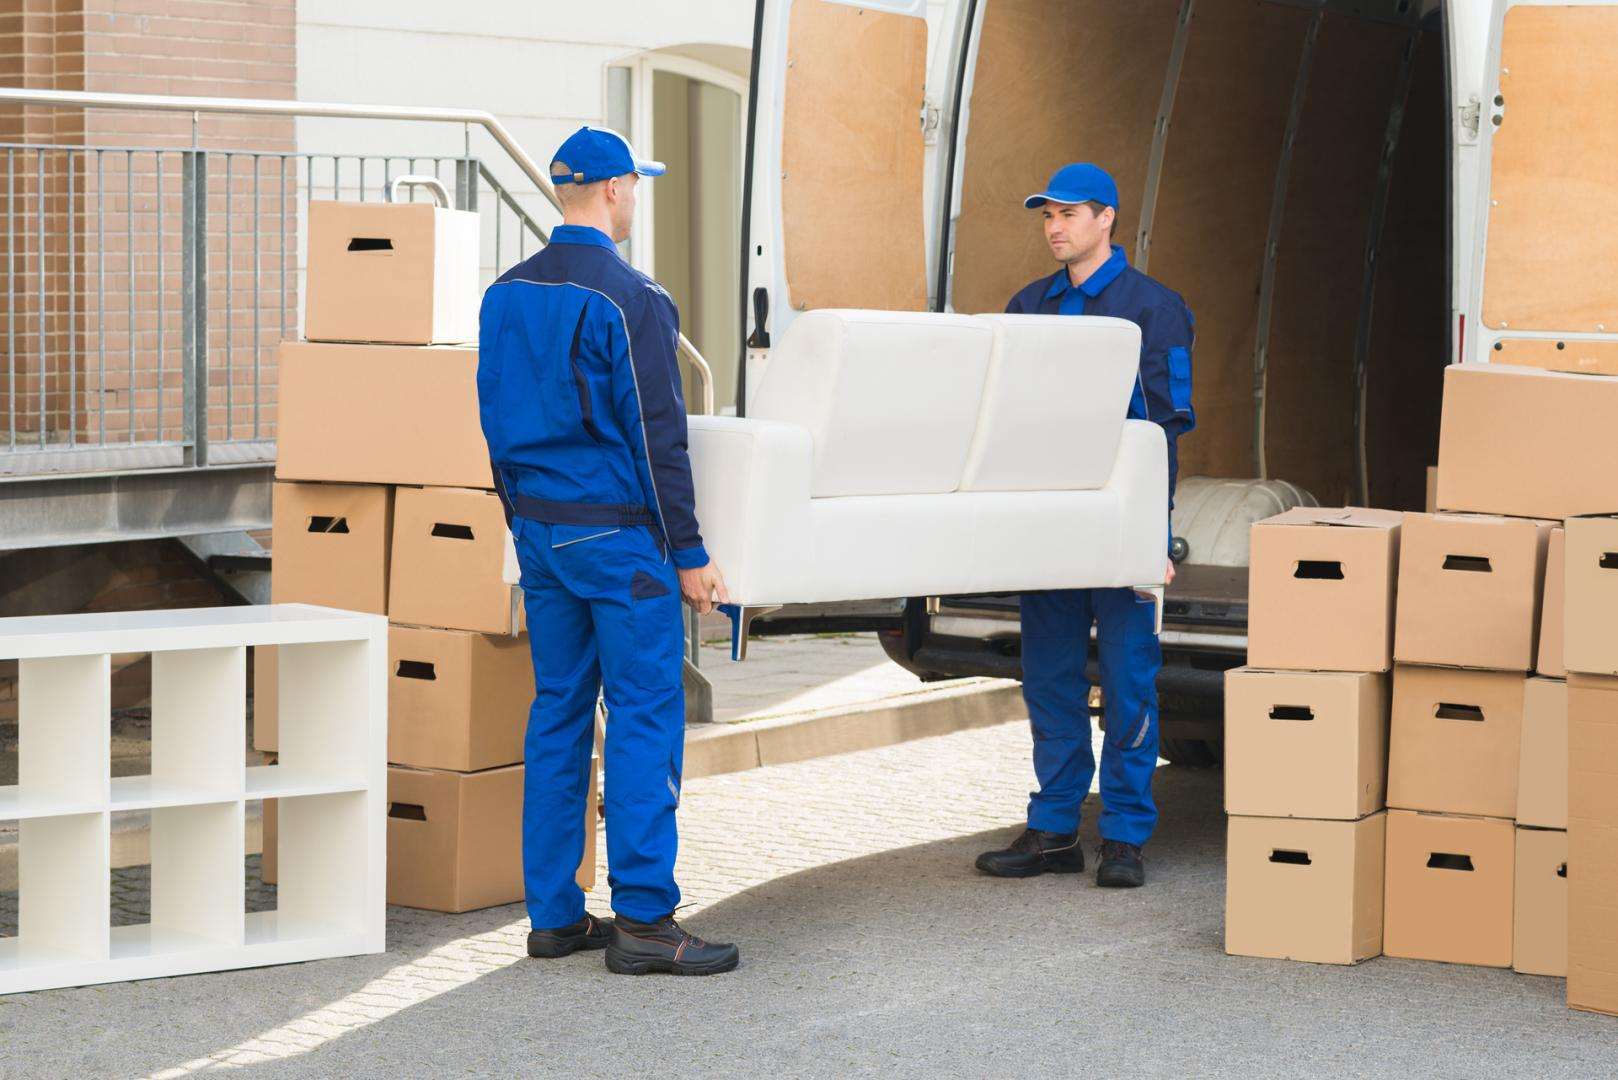 Removalists Sydney: Few Belongings Which Can Raise Relocation Complexities  While Relocating In Sydney | Bondi Removals